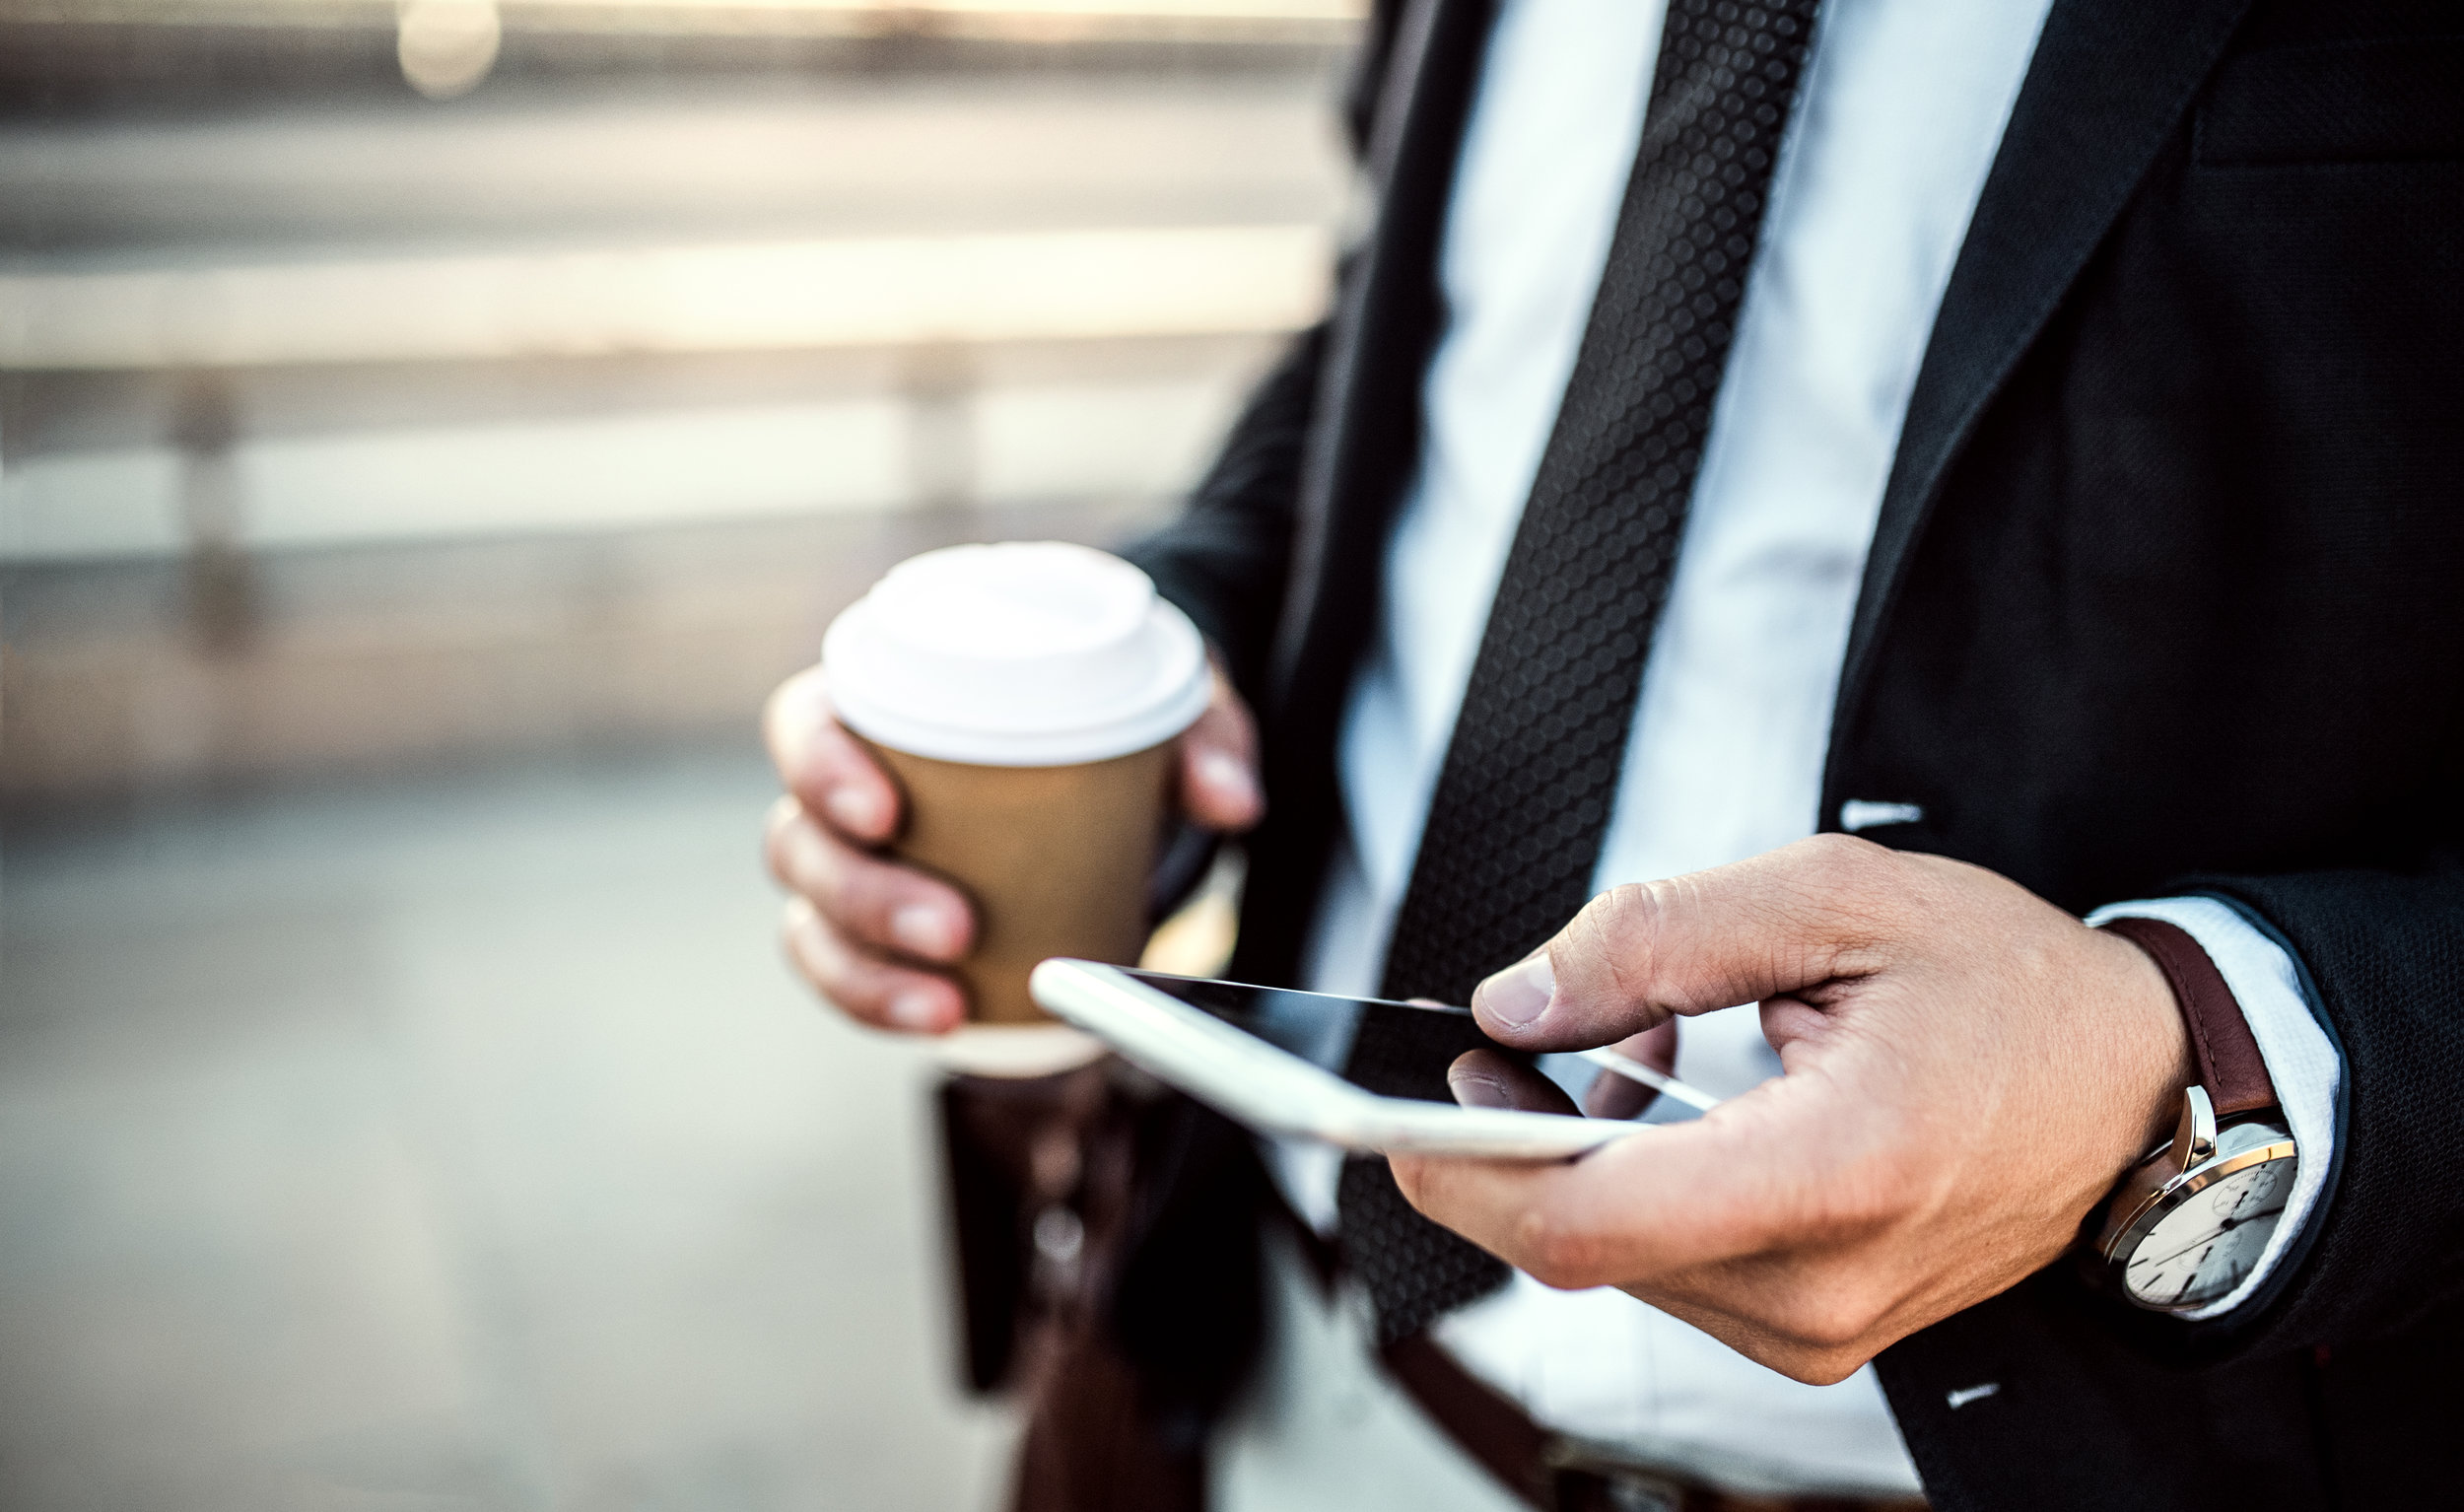 a-close-up-of-a-businessman-with-smartphone-and-89MRN2Z.jpg